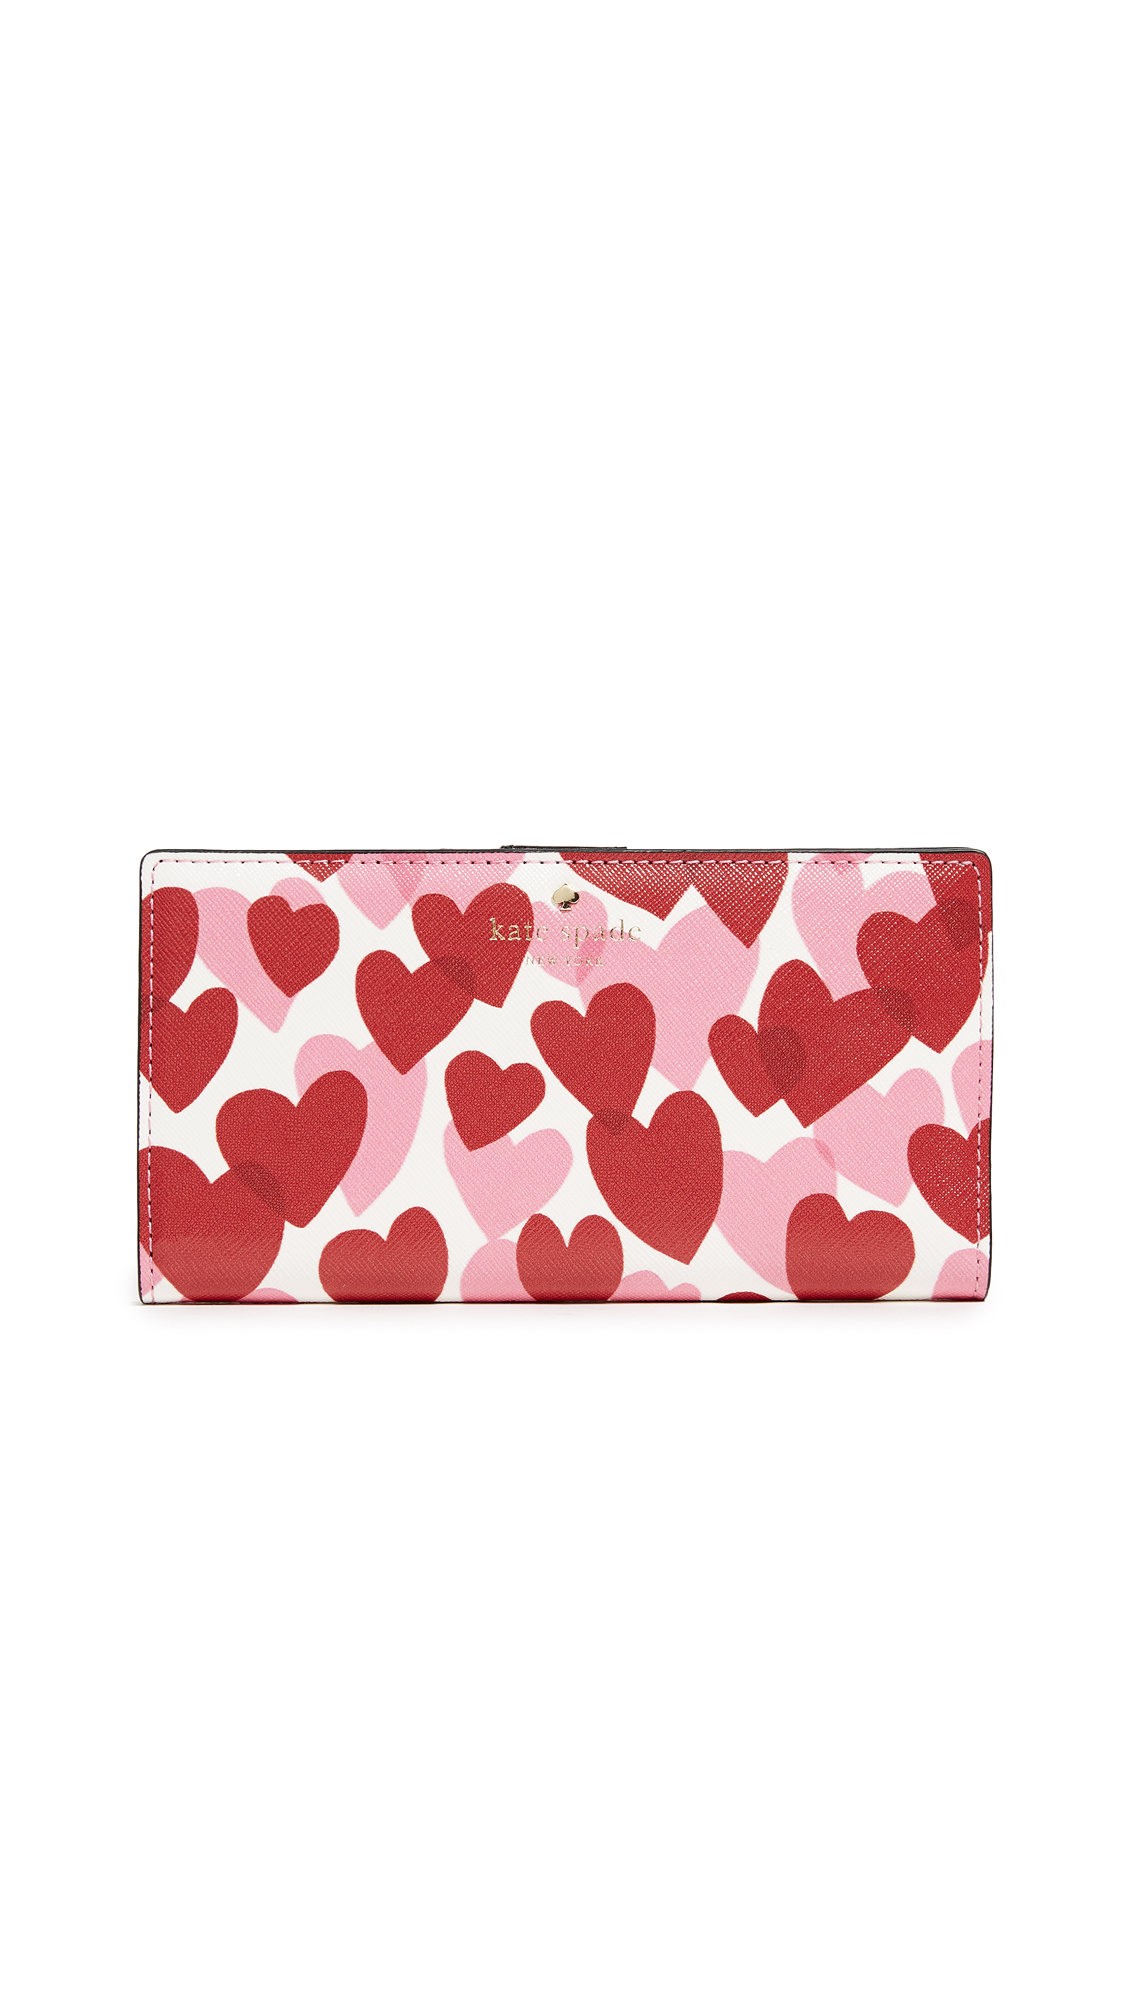 Kate Spade New York Ours Truly Stacy Wallet - Heart Party